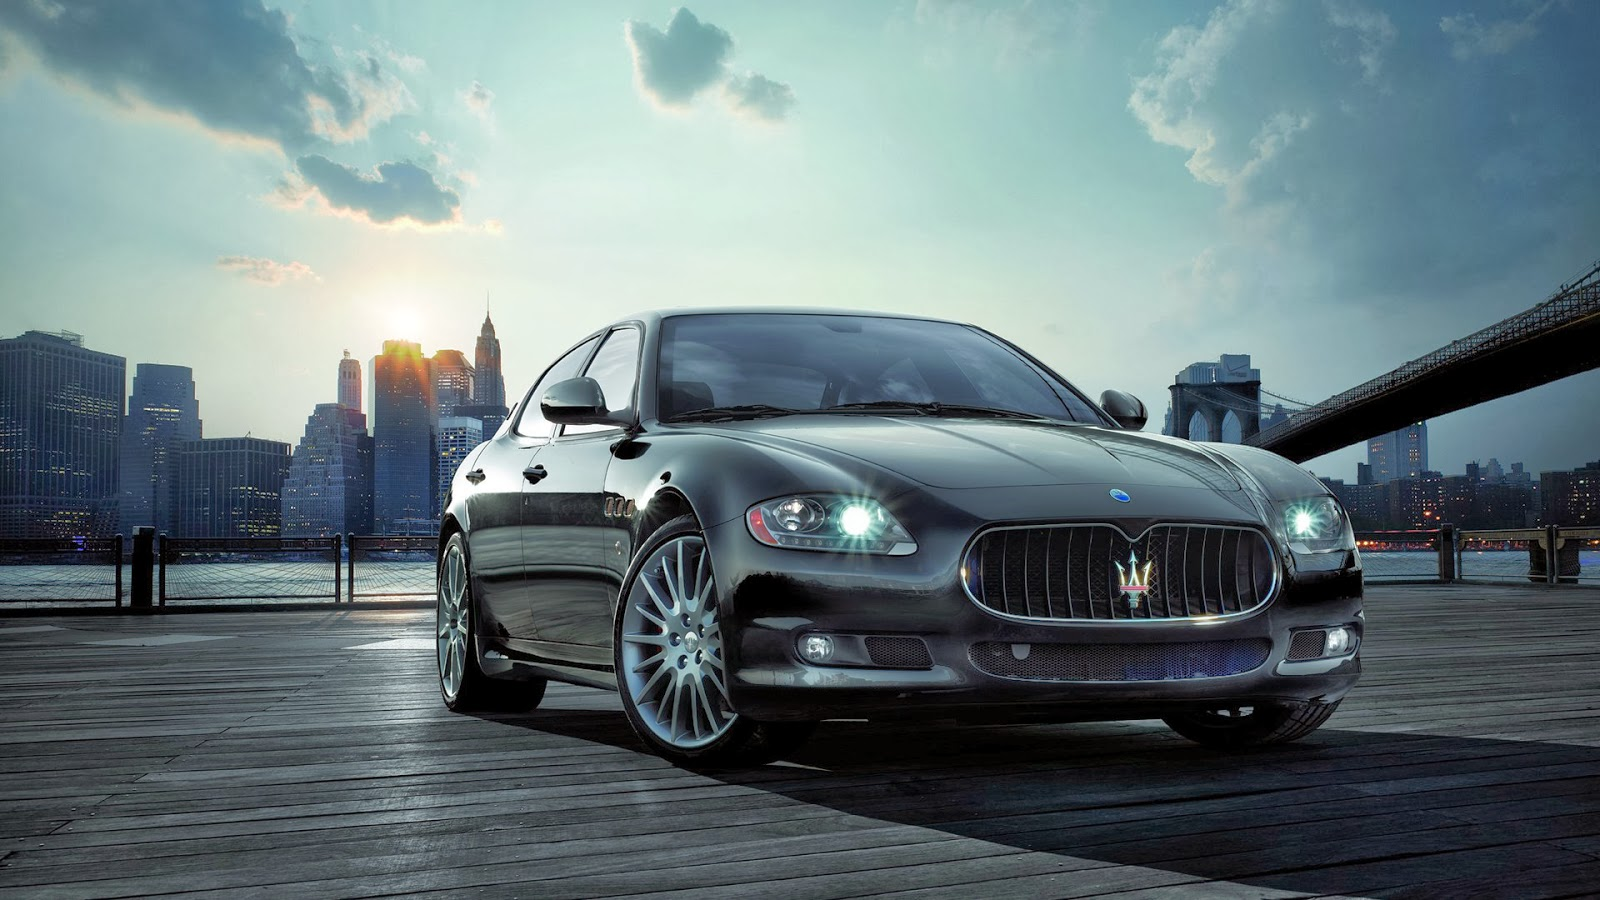 HD Car Wallpapers 1080p Widescreen | Nice Pics Gallery